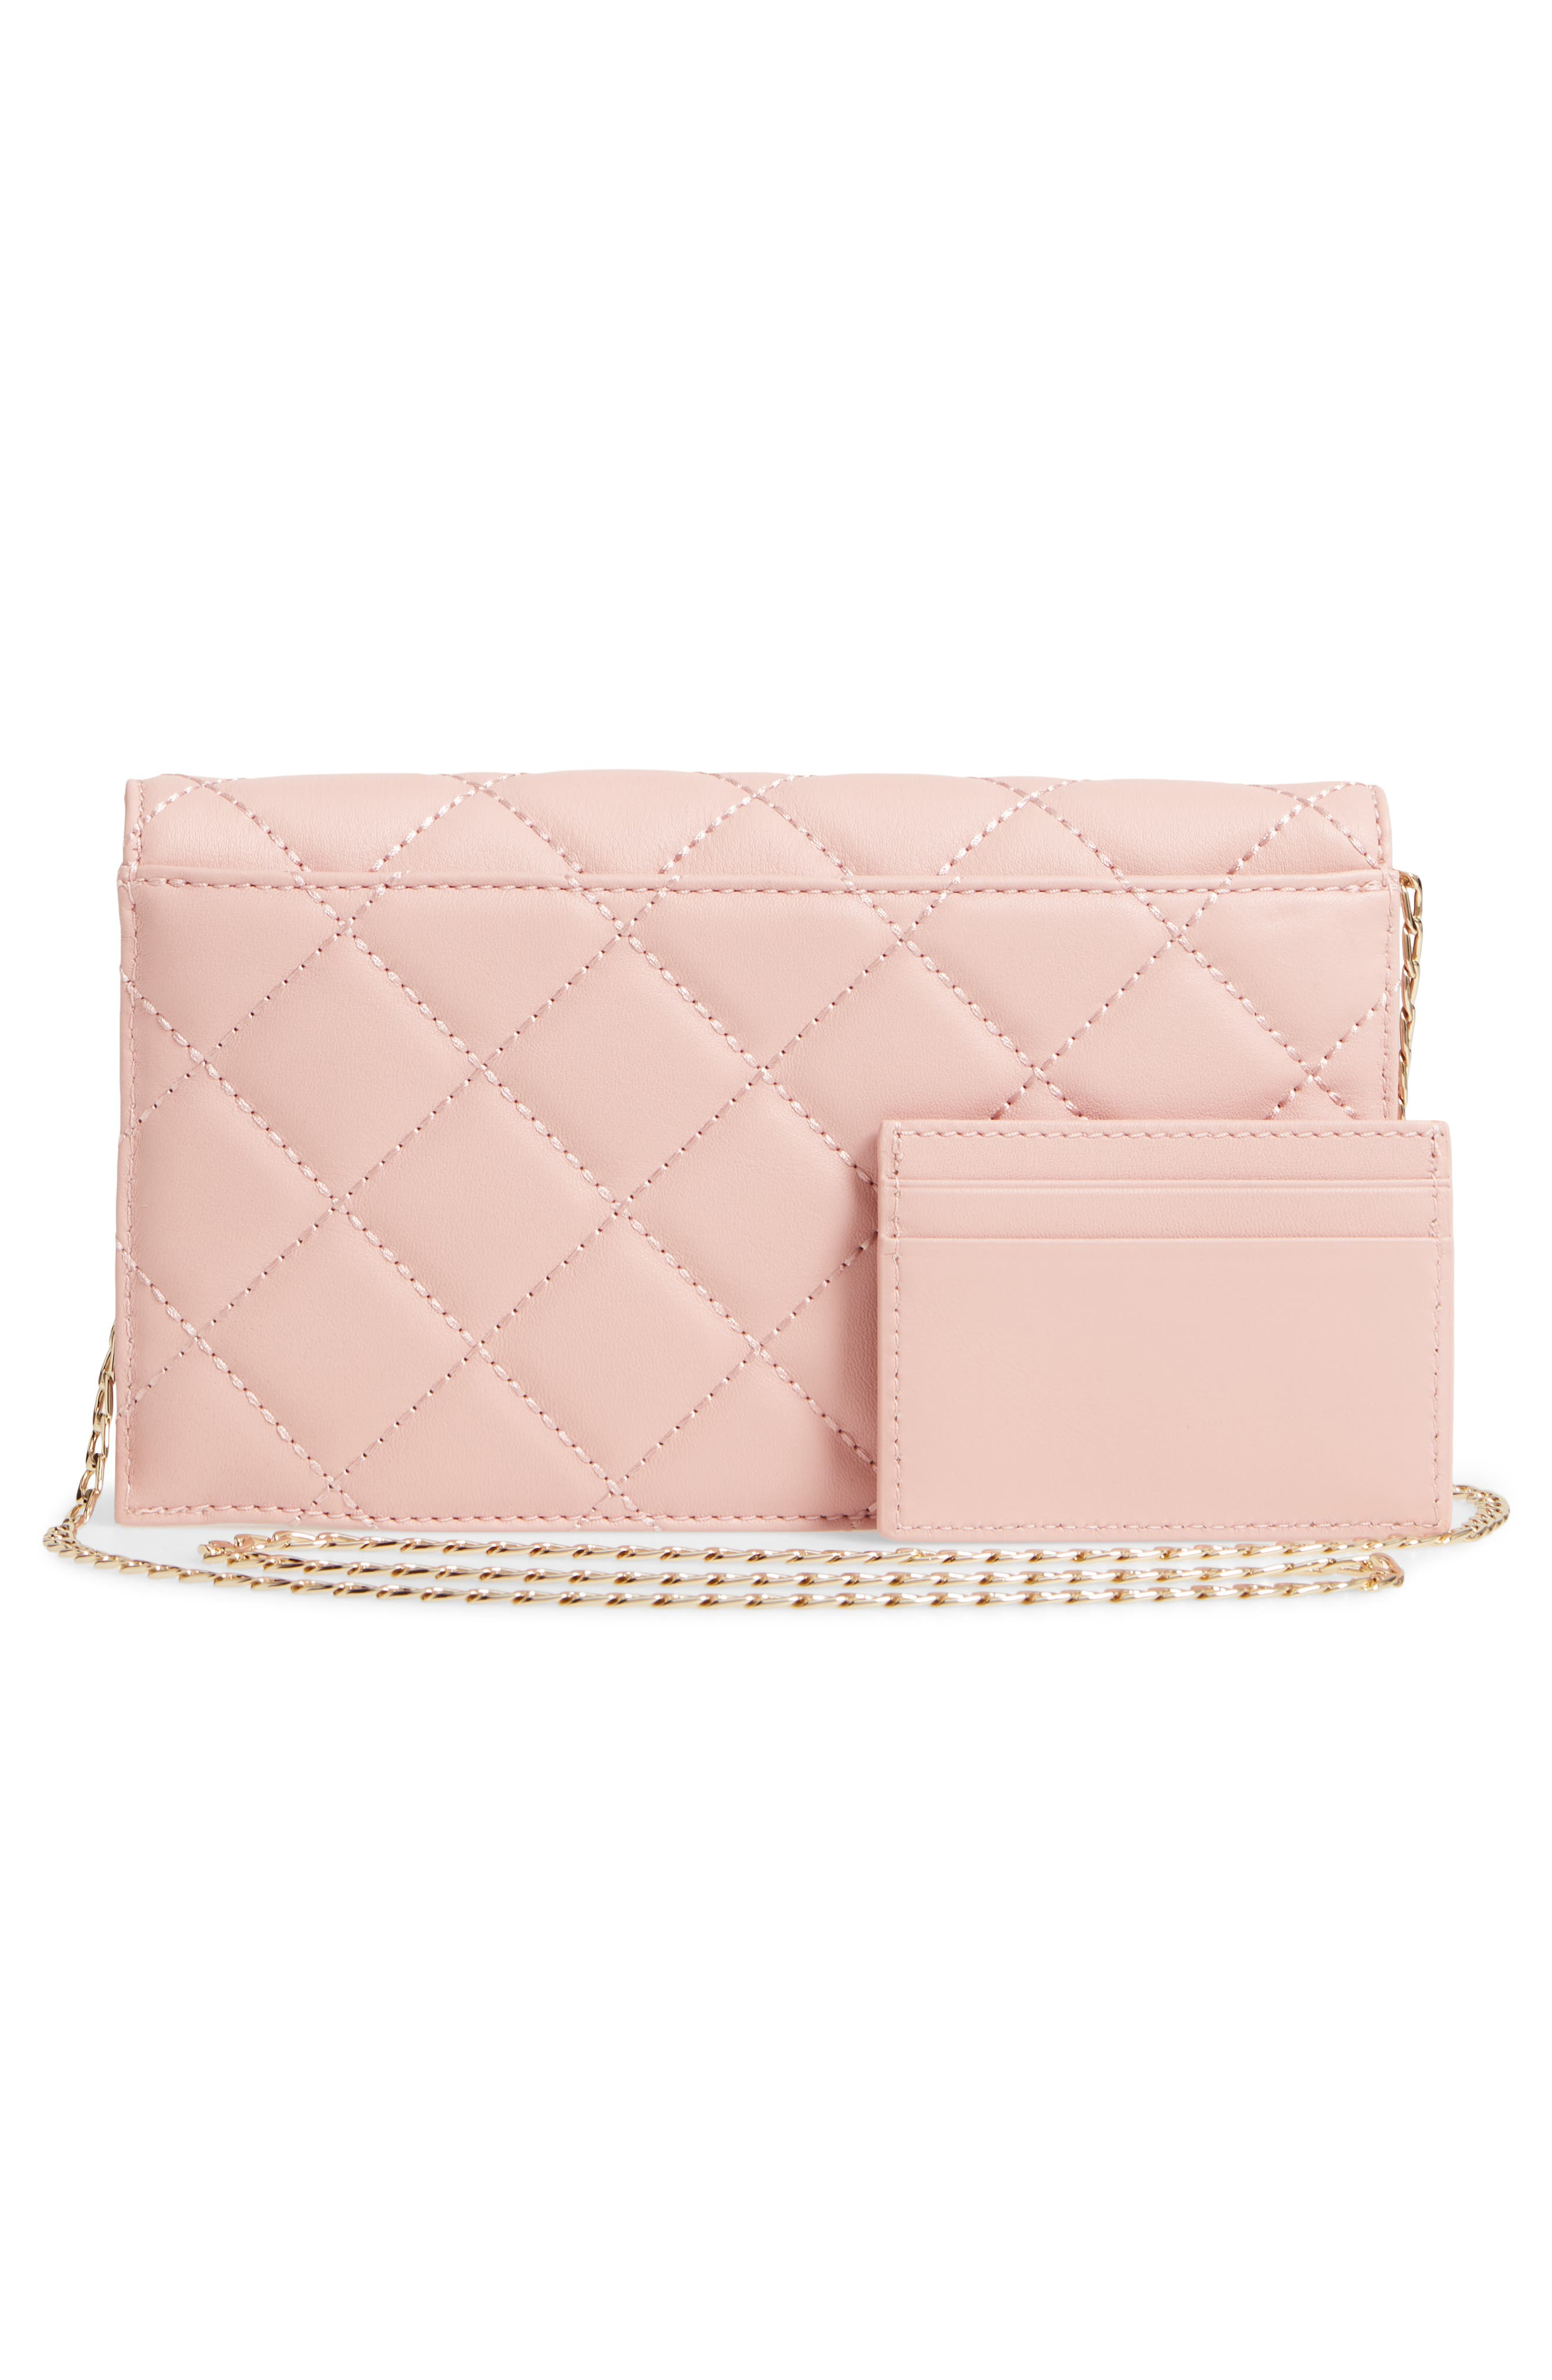 emerson place - brennan quilted leather convertible clutch & card holder,                             Alternate thumbnail 6, color,